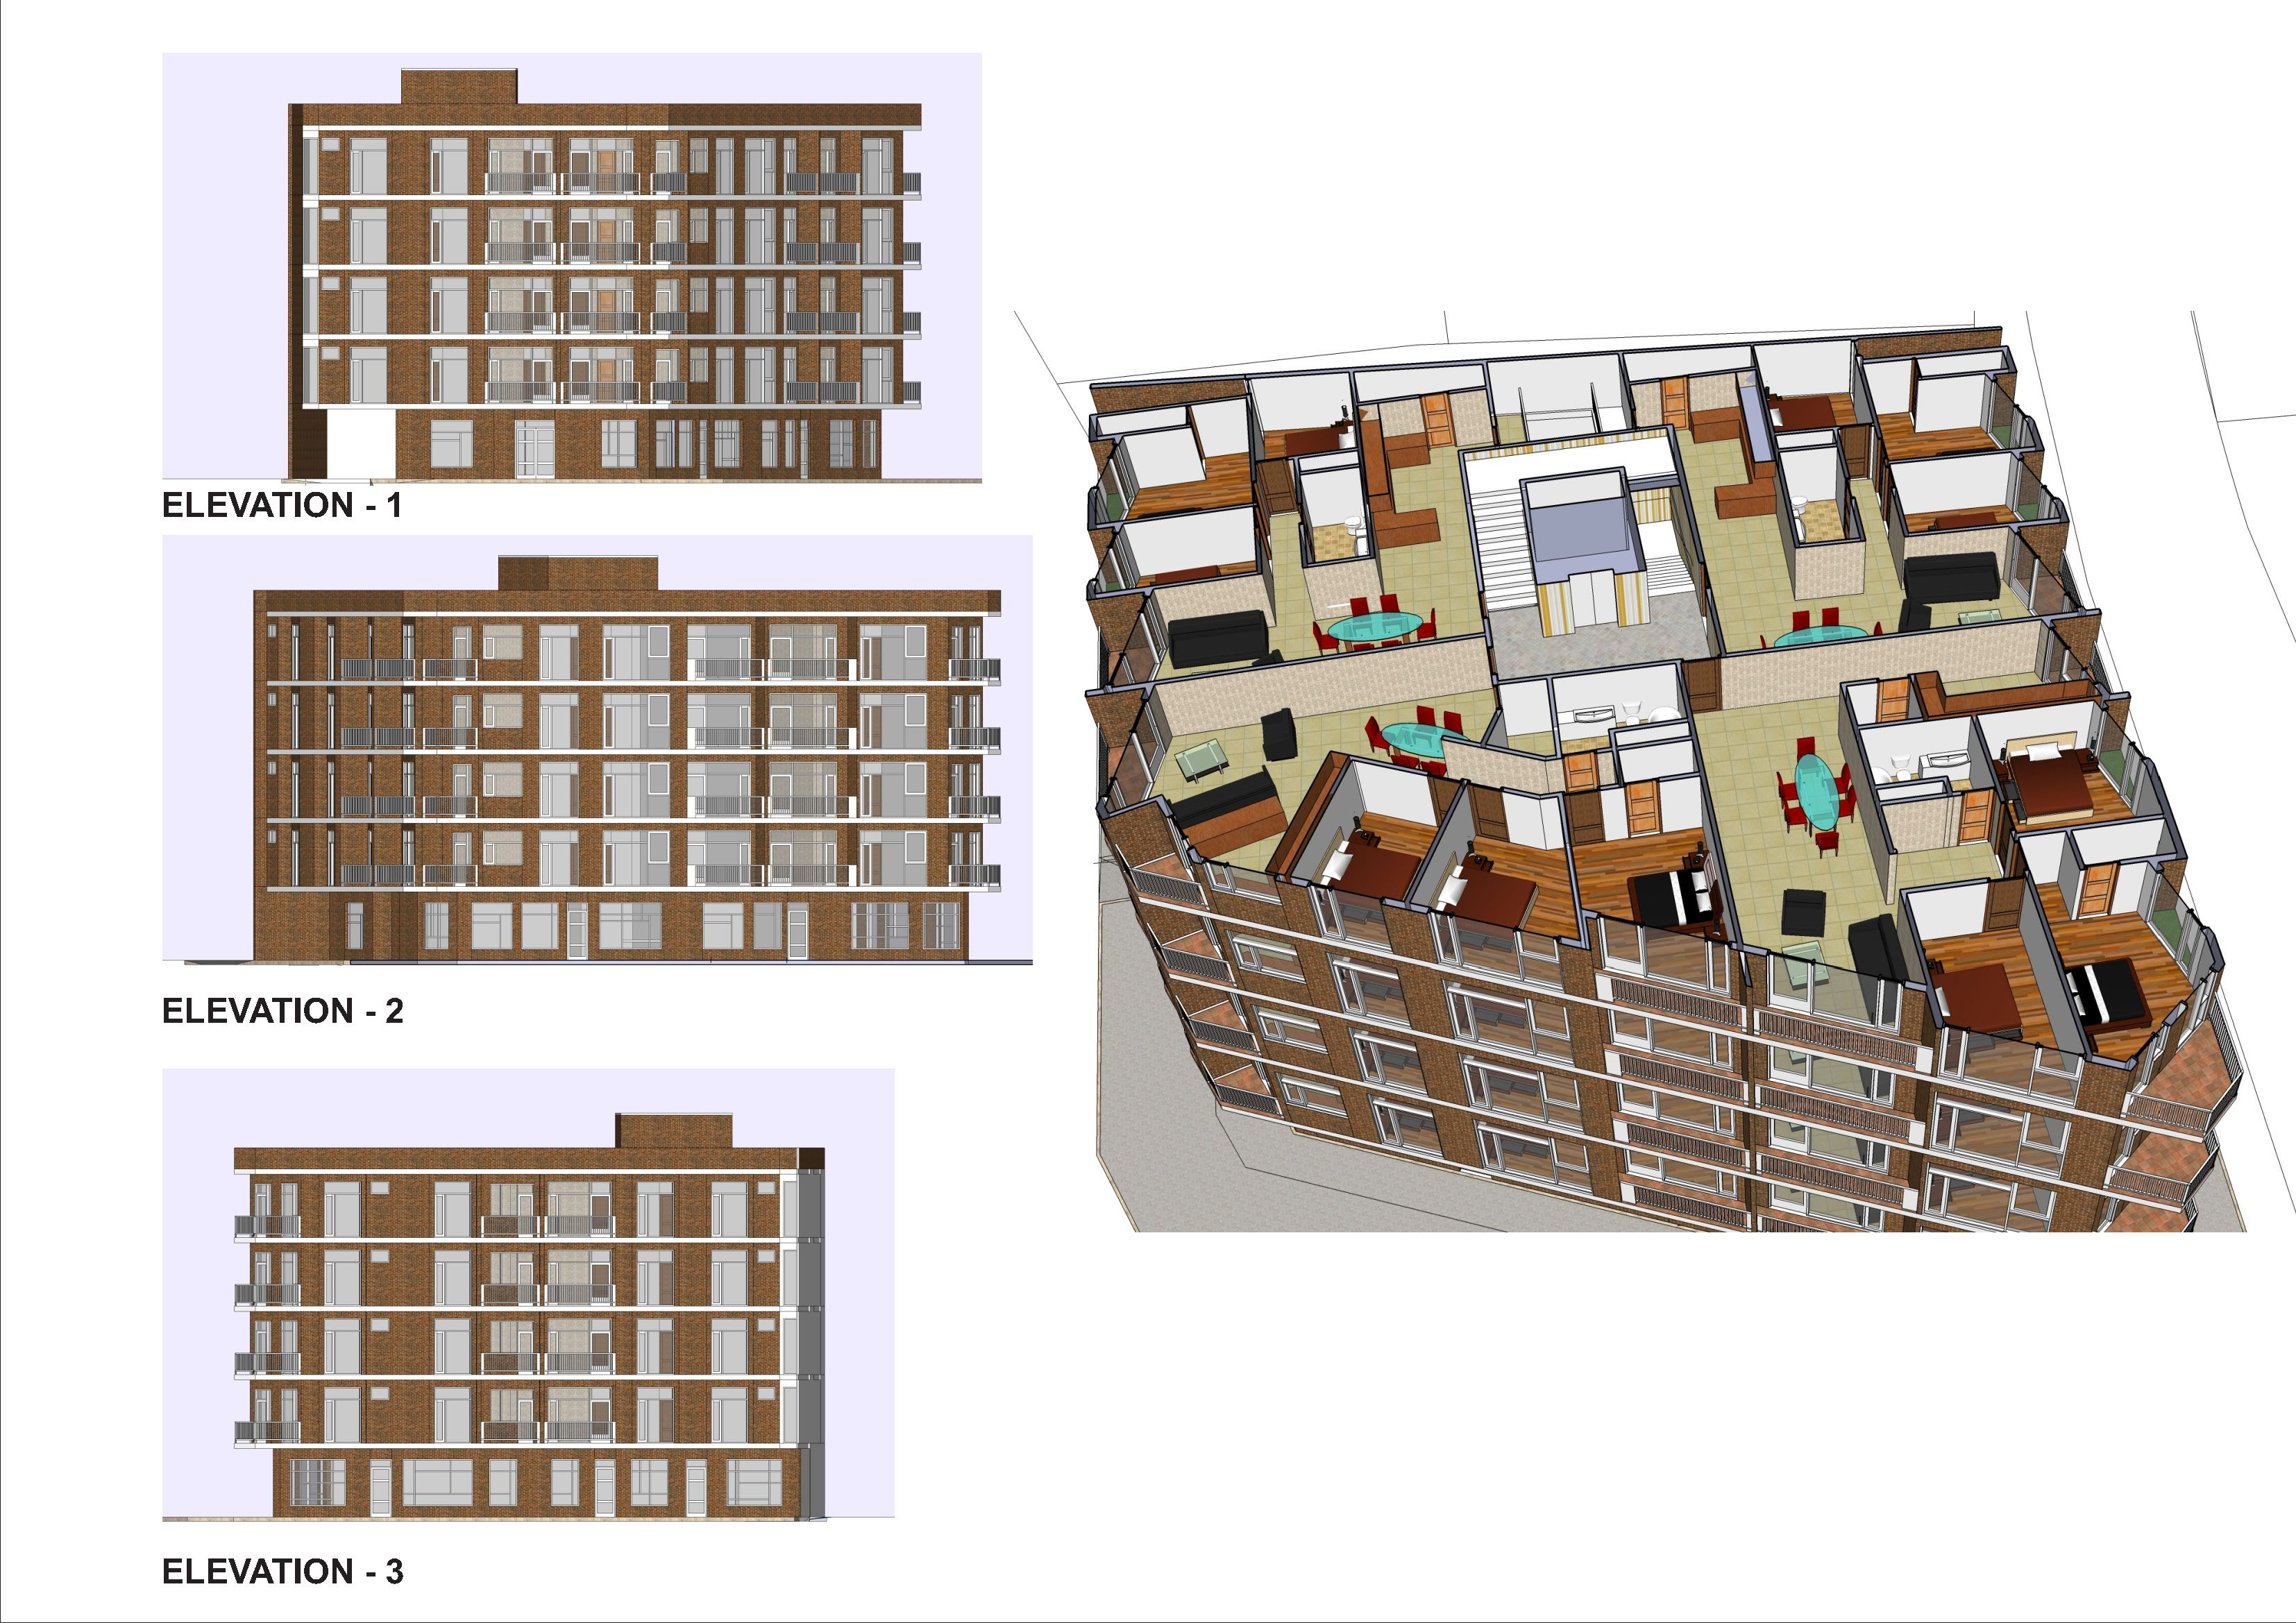 Apartment building plans location aksaray turkey new for Building design plan